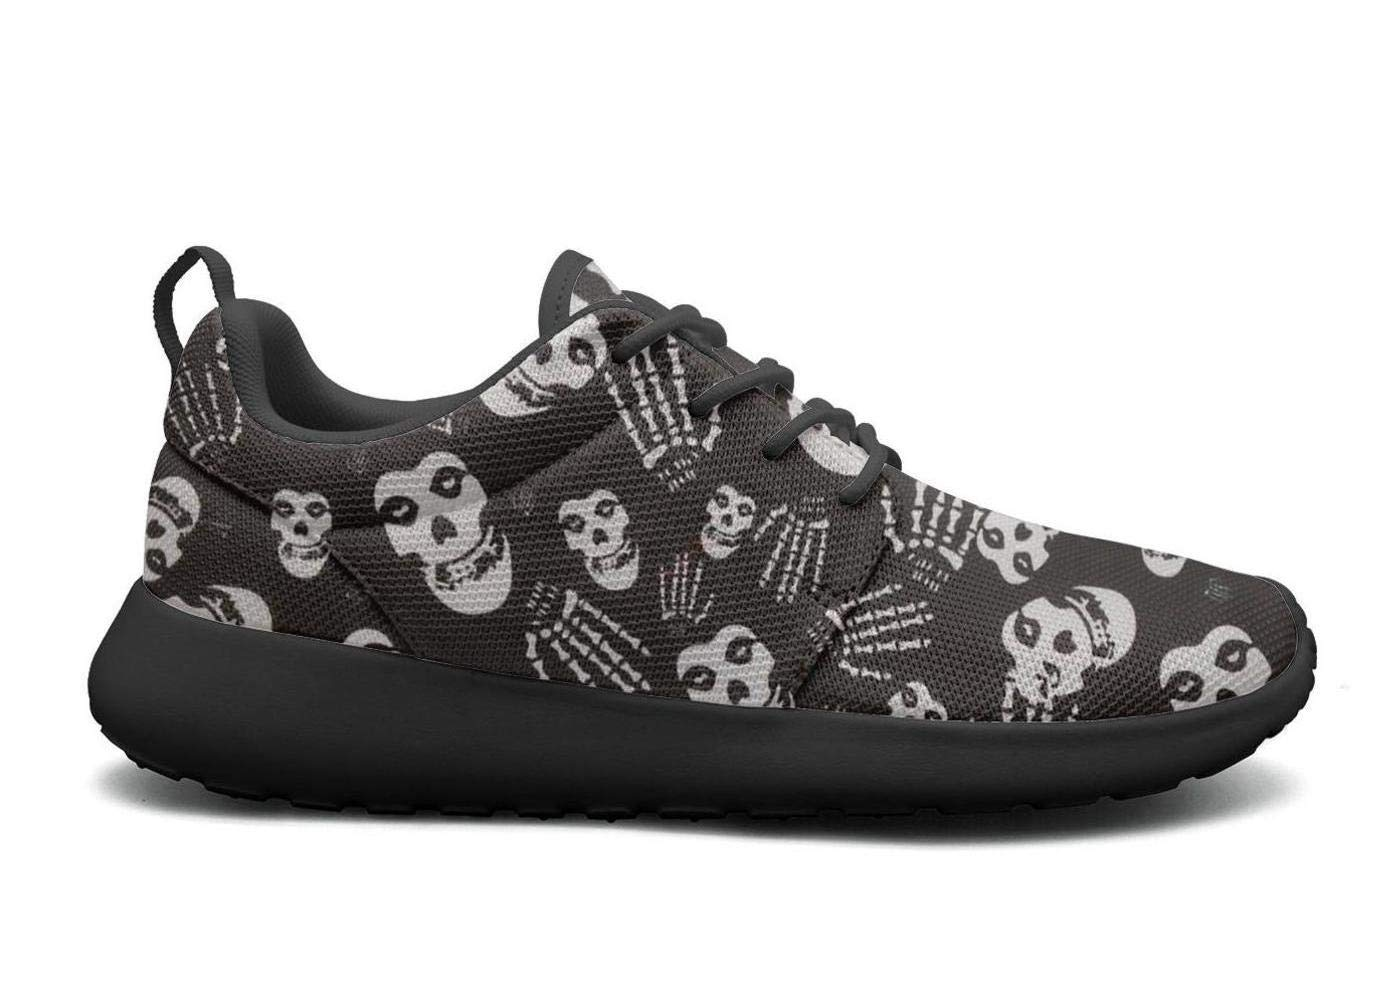 e69e92282c93 Get Quotations · UONIERSH Skull-Misfits-Ghost-Punk-Gothic Print Women s  Sports Running Shoes Casual